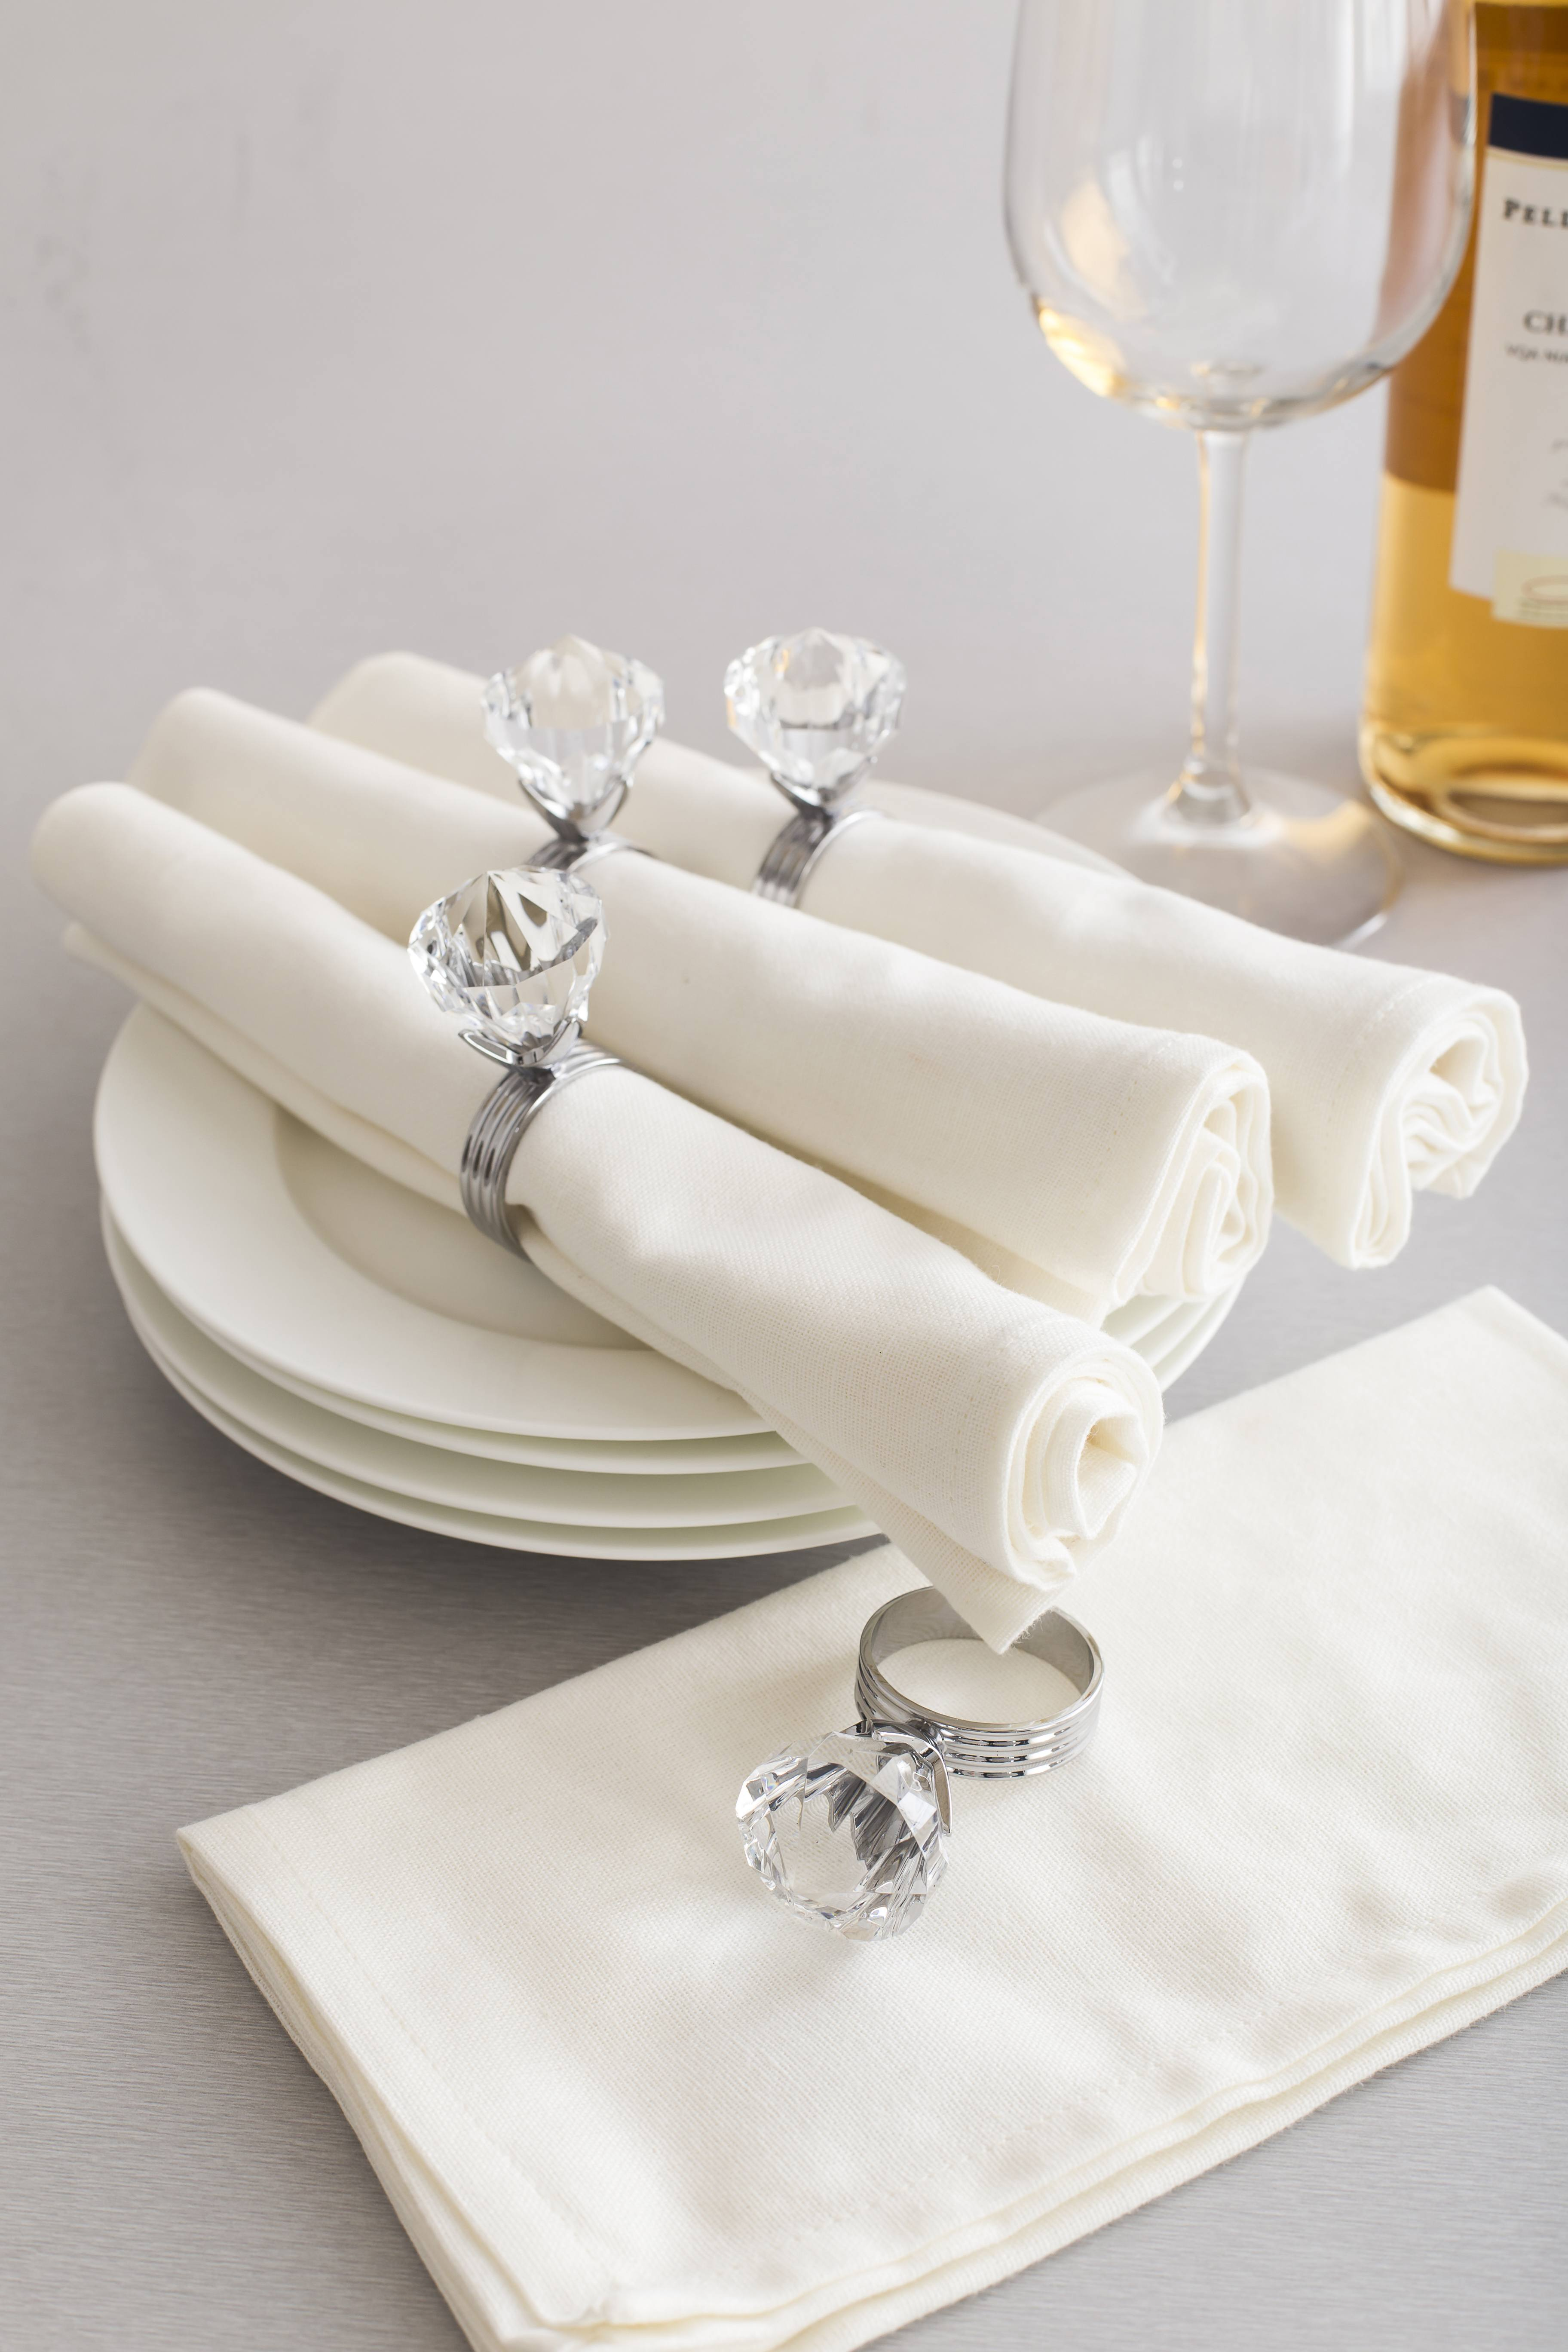 white napkins rolled and secured with a napkin ring with an acrylic diamond on top - best for weddings